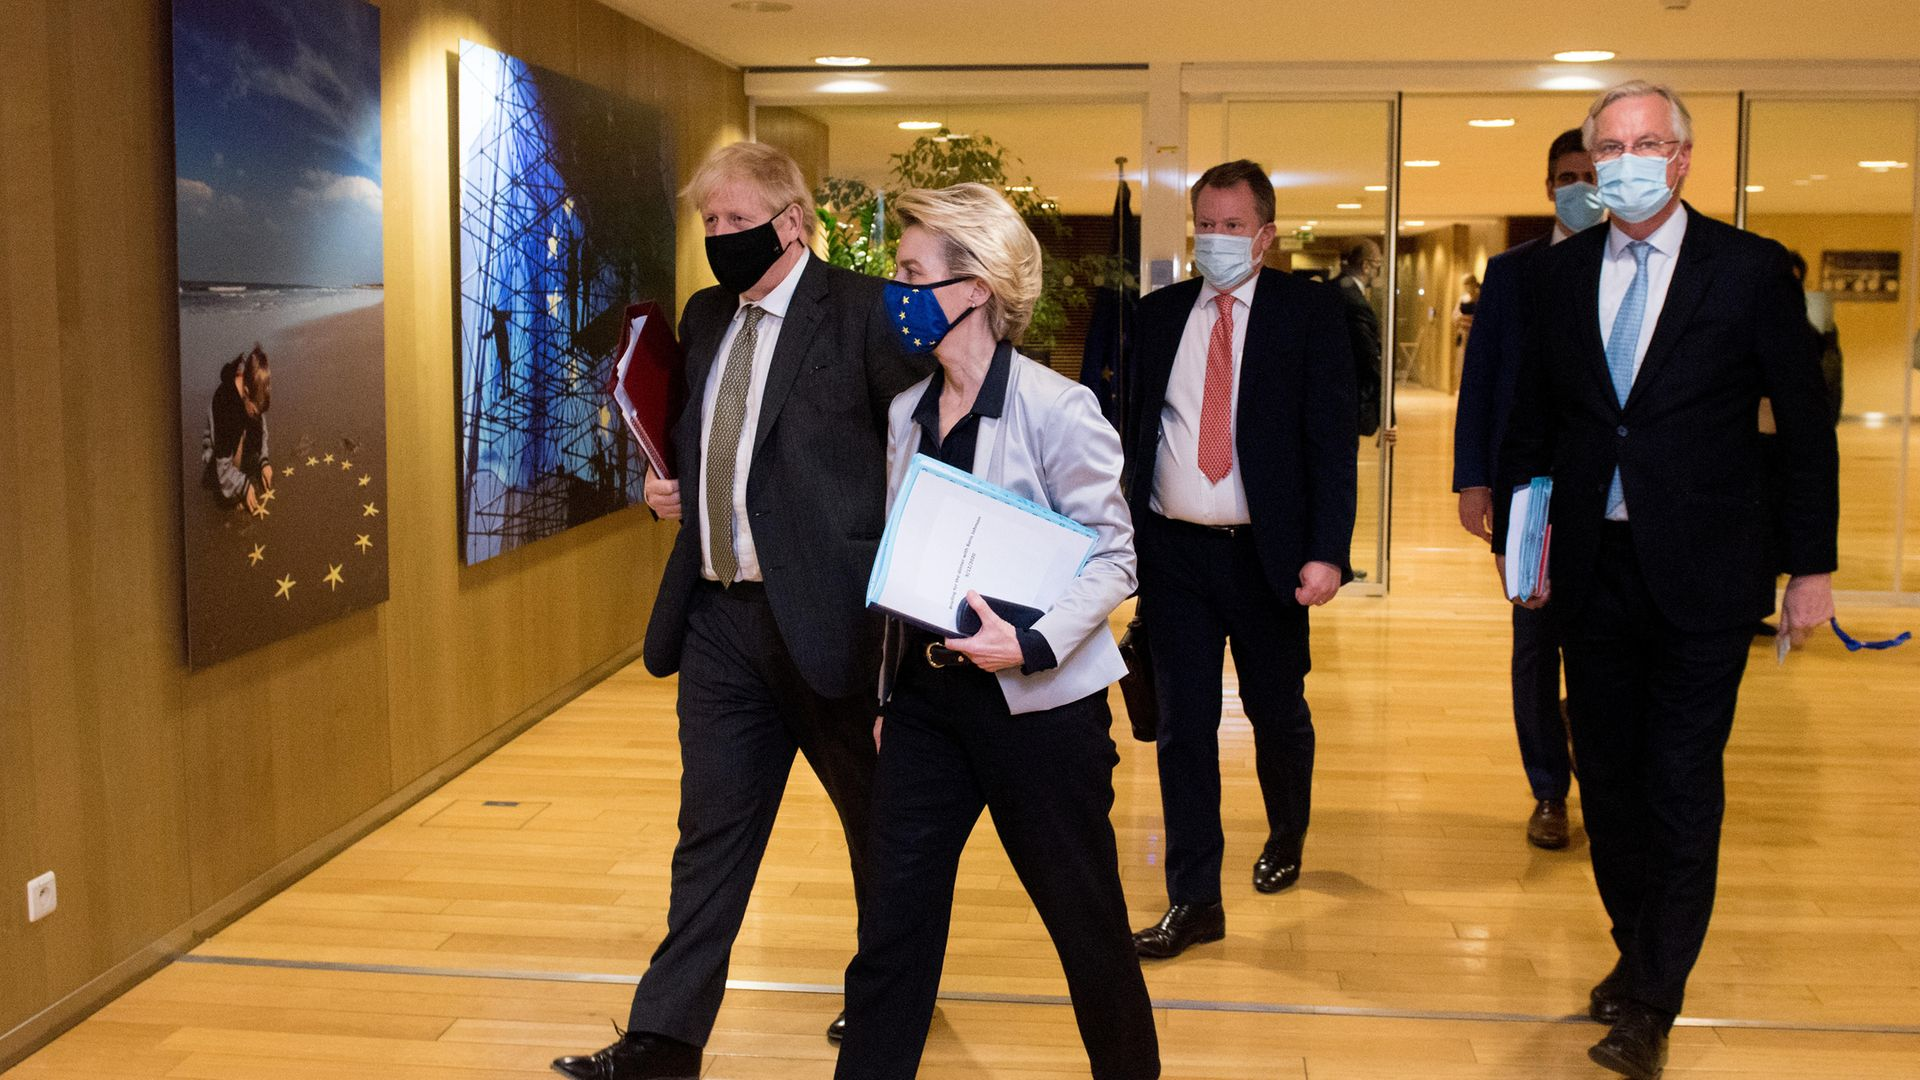 Prime Minister Boris Johnson, European Commission president Ursula von der Leyen, Lord David Frost and Michel Barnier in Brussels where they have agreed the UK and EU will continue talks on a post-Brexit trade deal. - Credit: PA